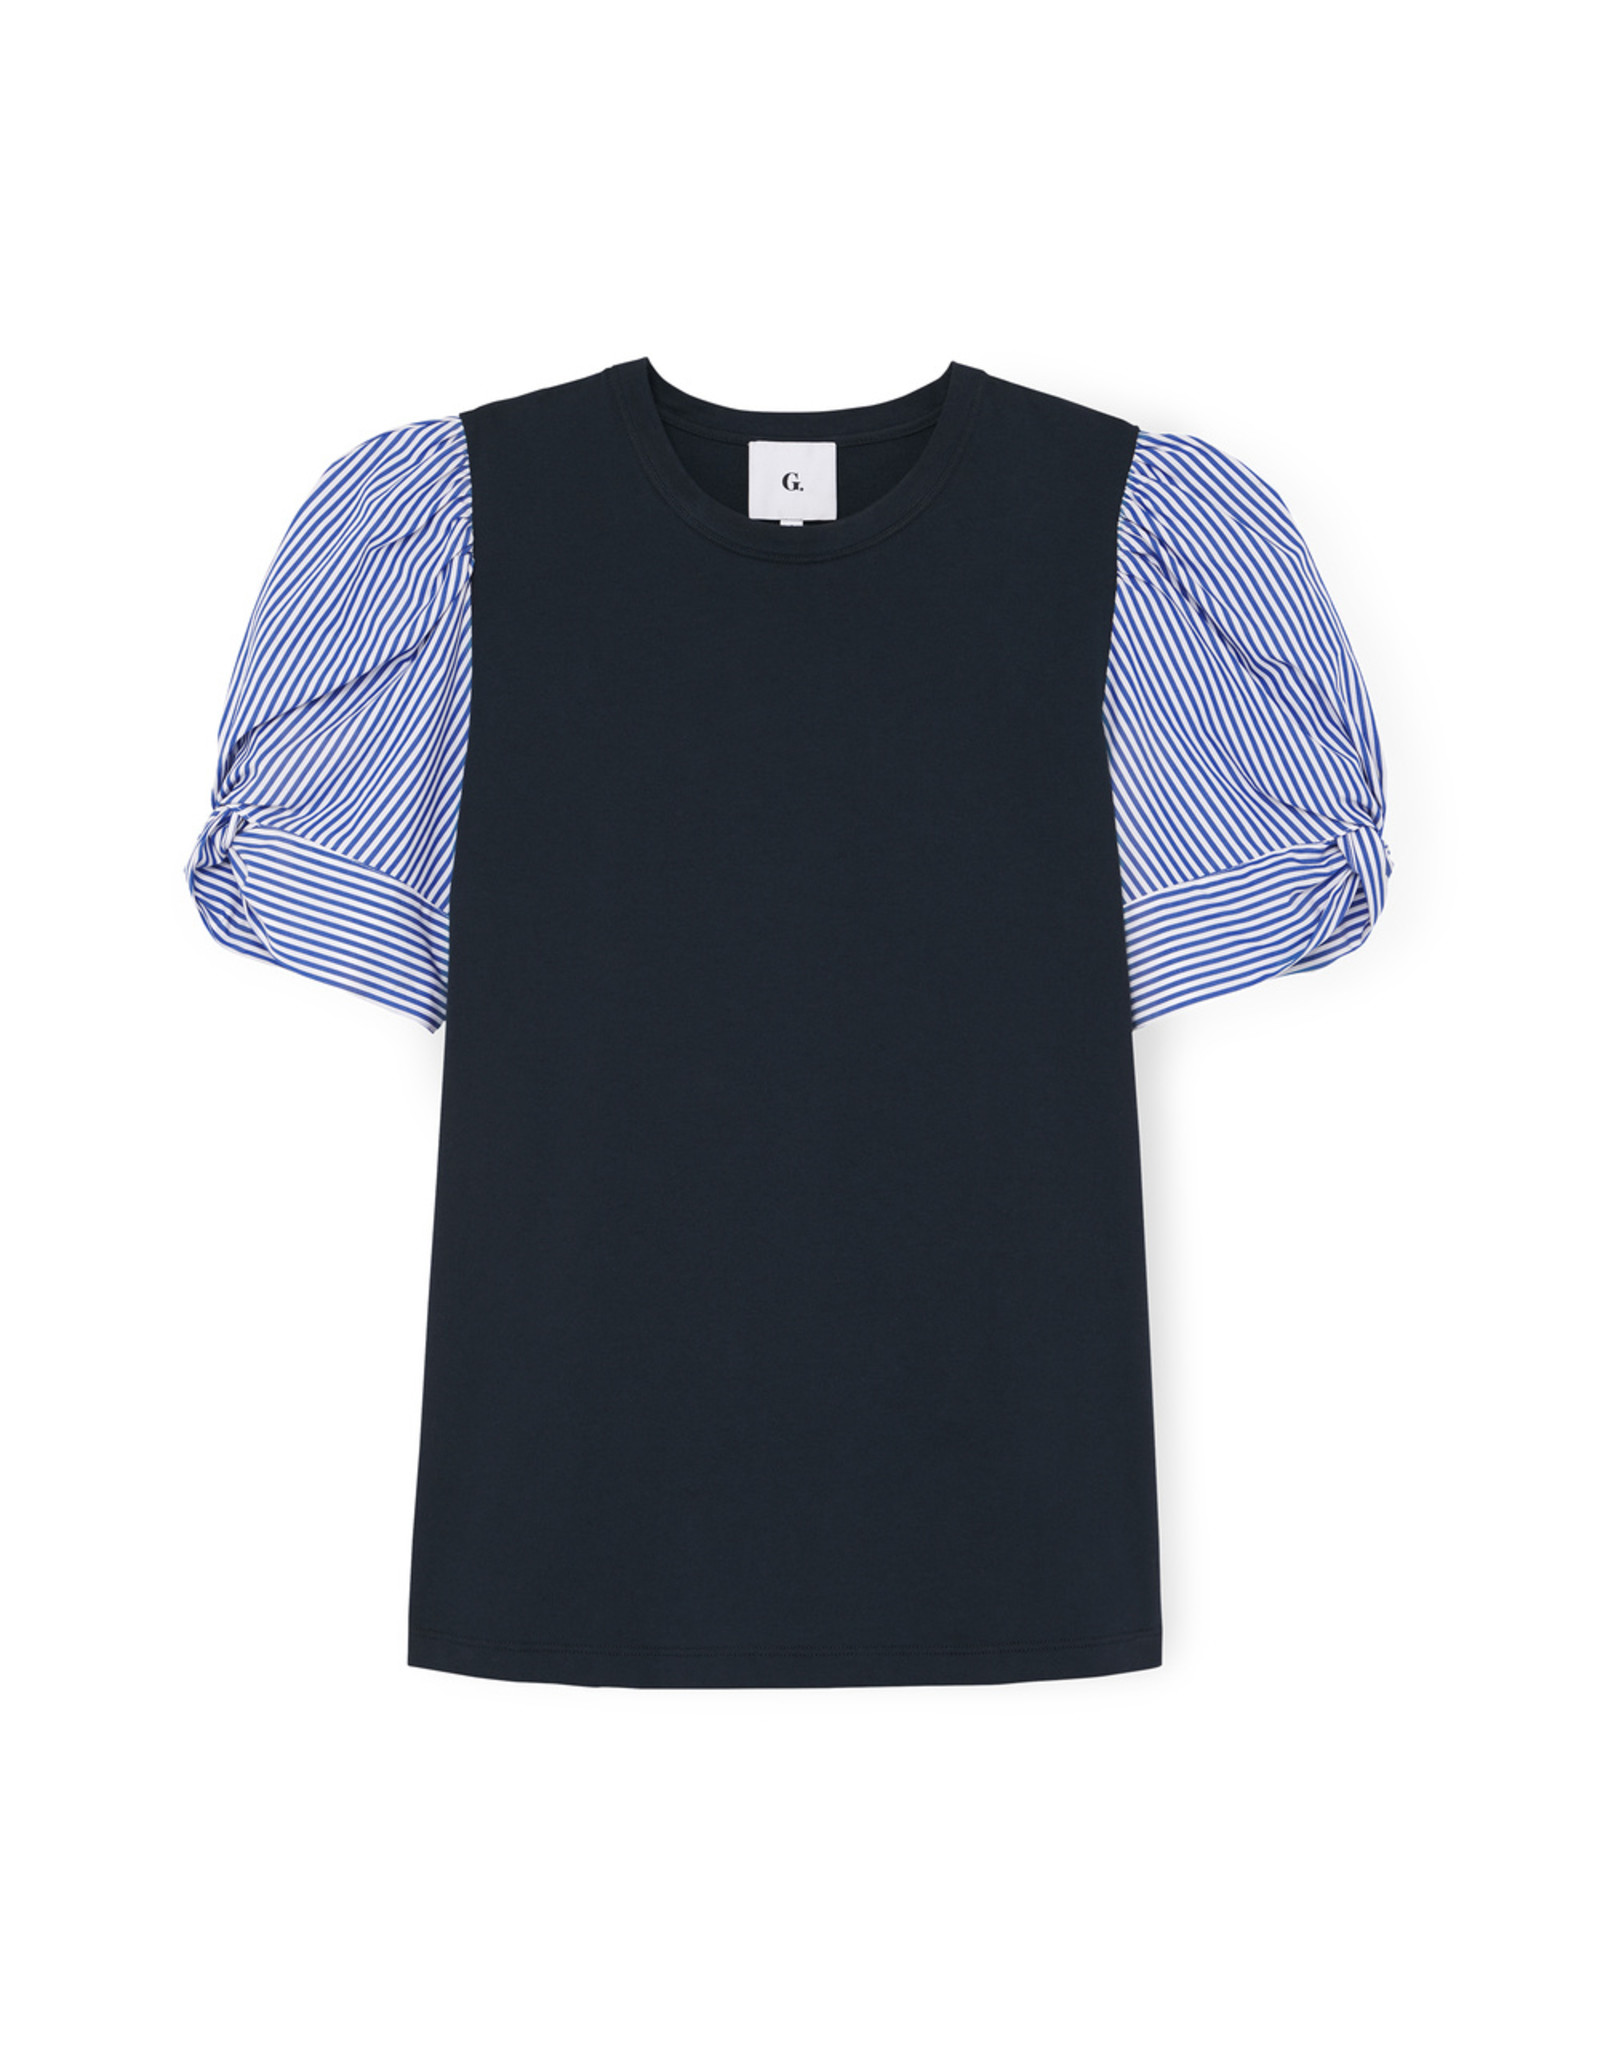 G. Label G. Label Justine Puff Sleeve T-Shirt (Size: 2, Color: Navy/Stripe)